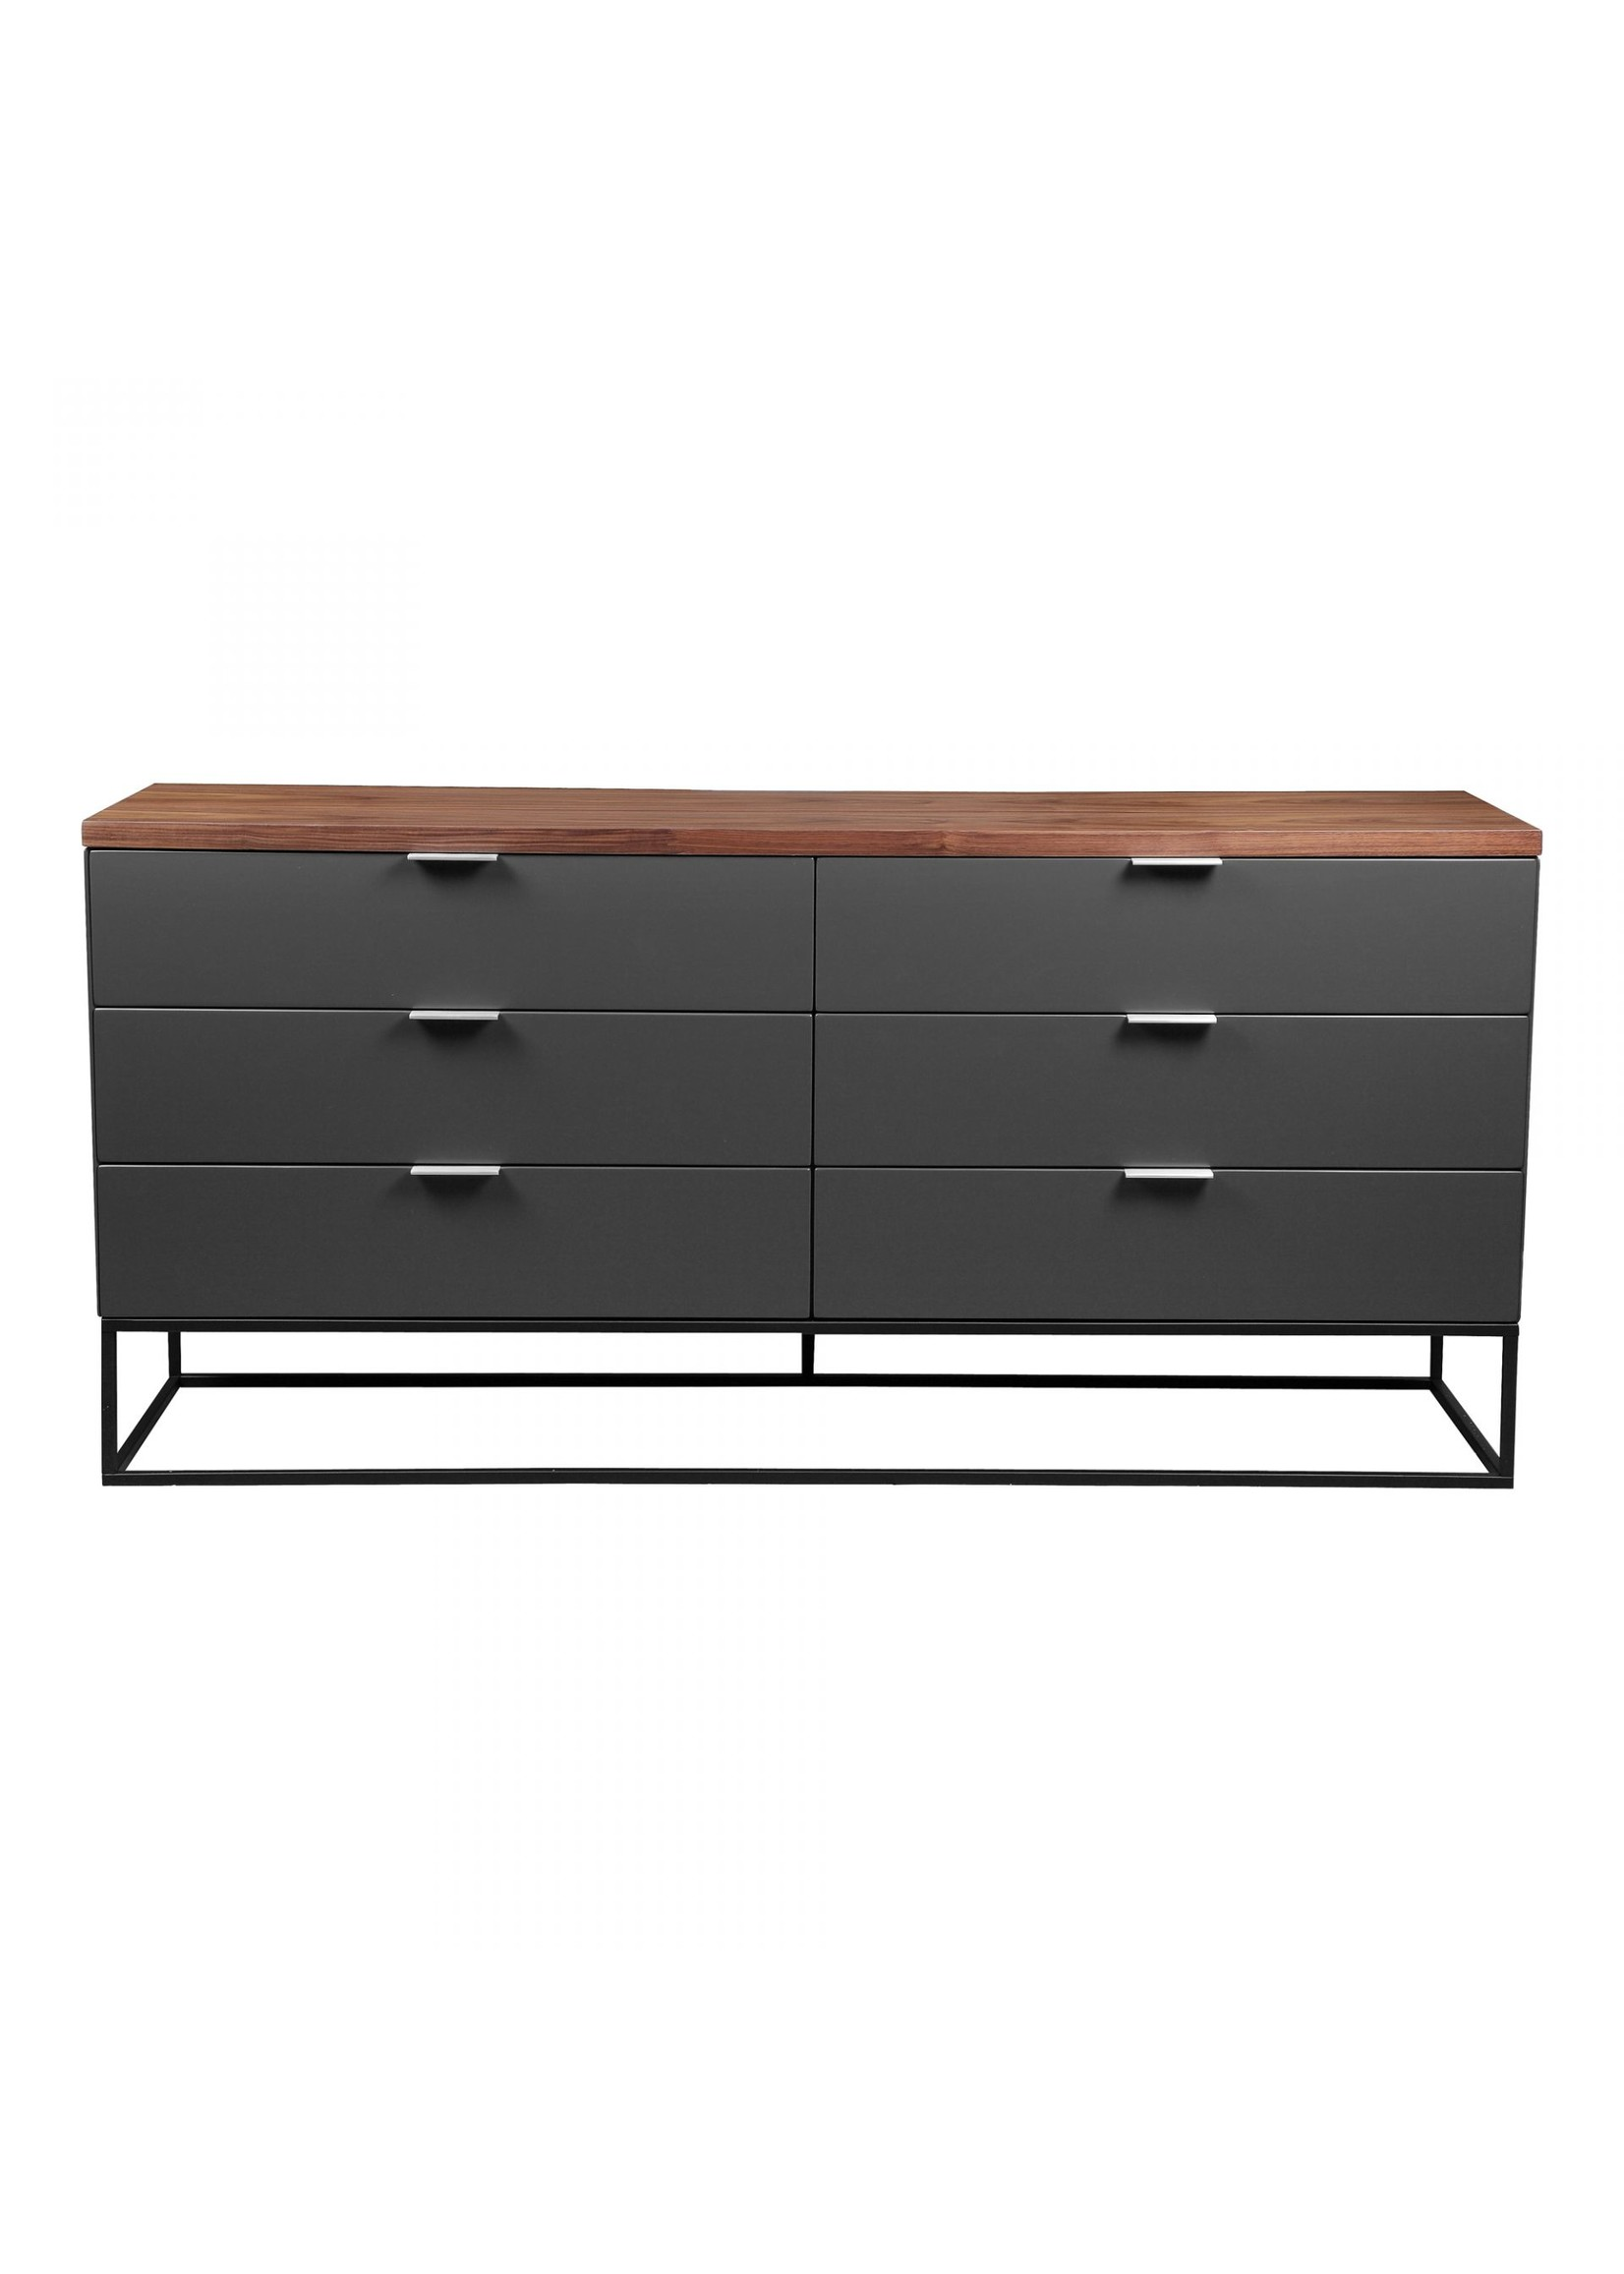 Moes Home Collection MOES Leroy Low Dresser Sideboard